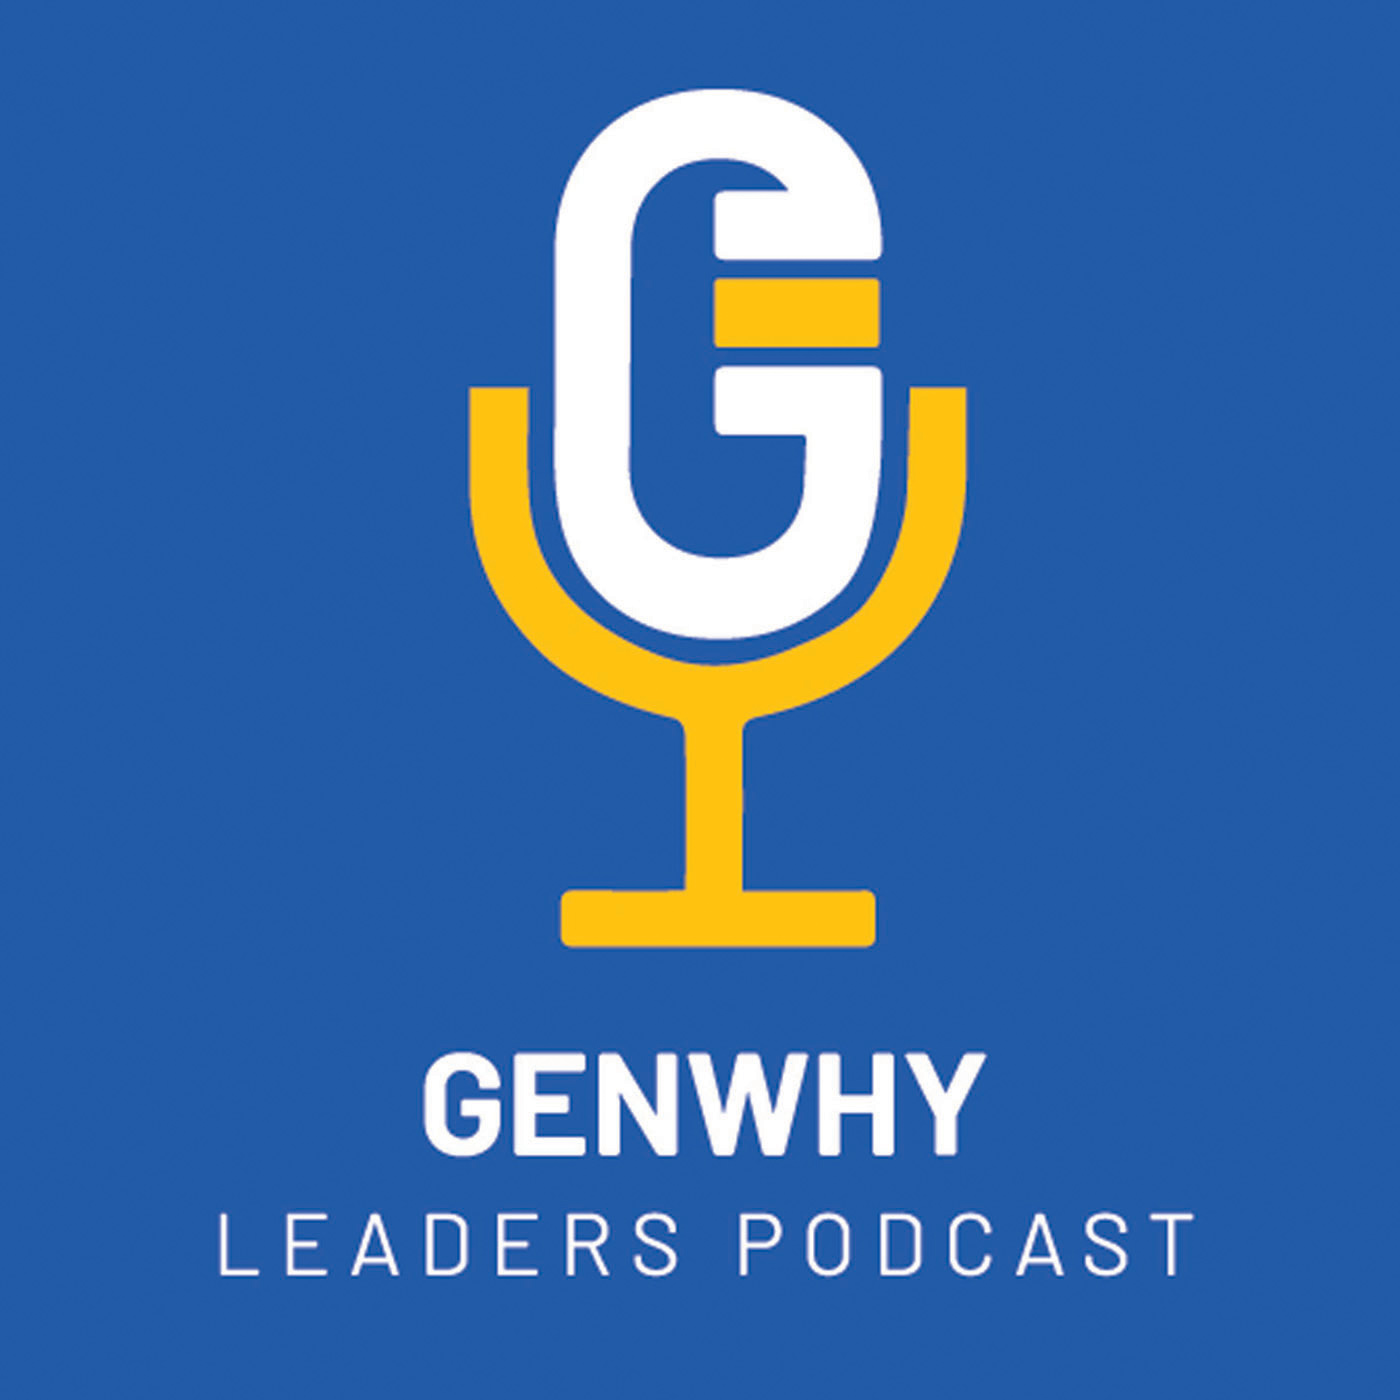 The GenWhy Leaders Podcast show art